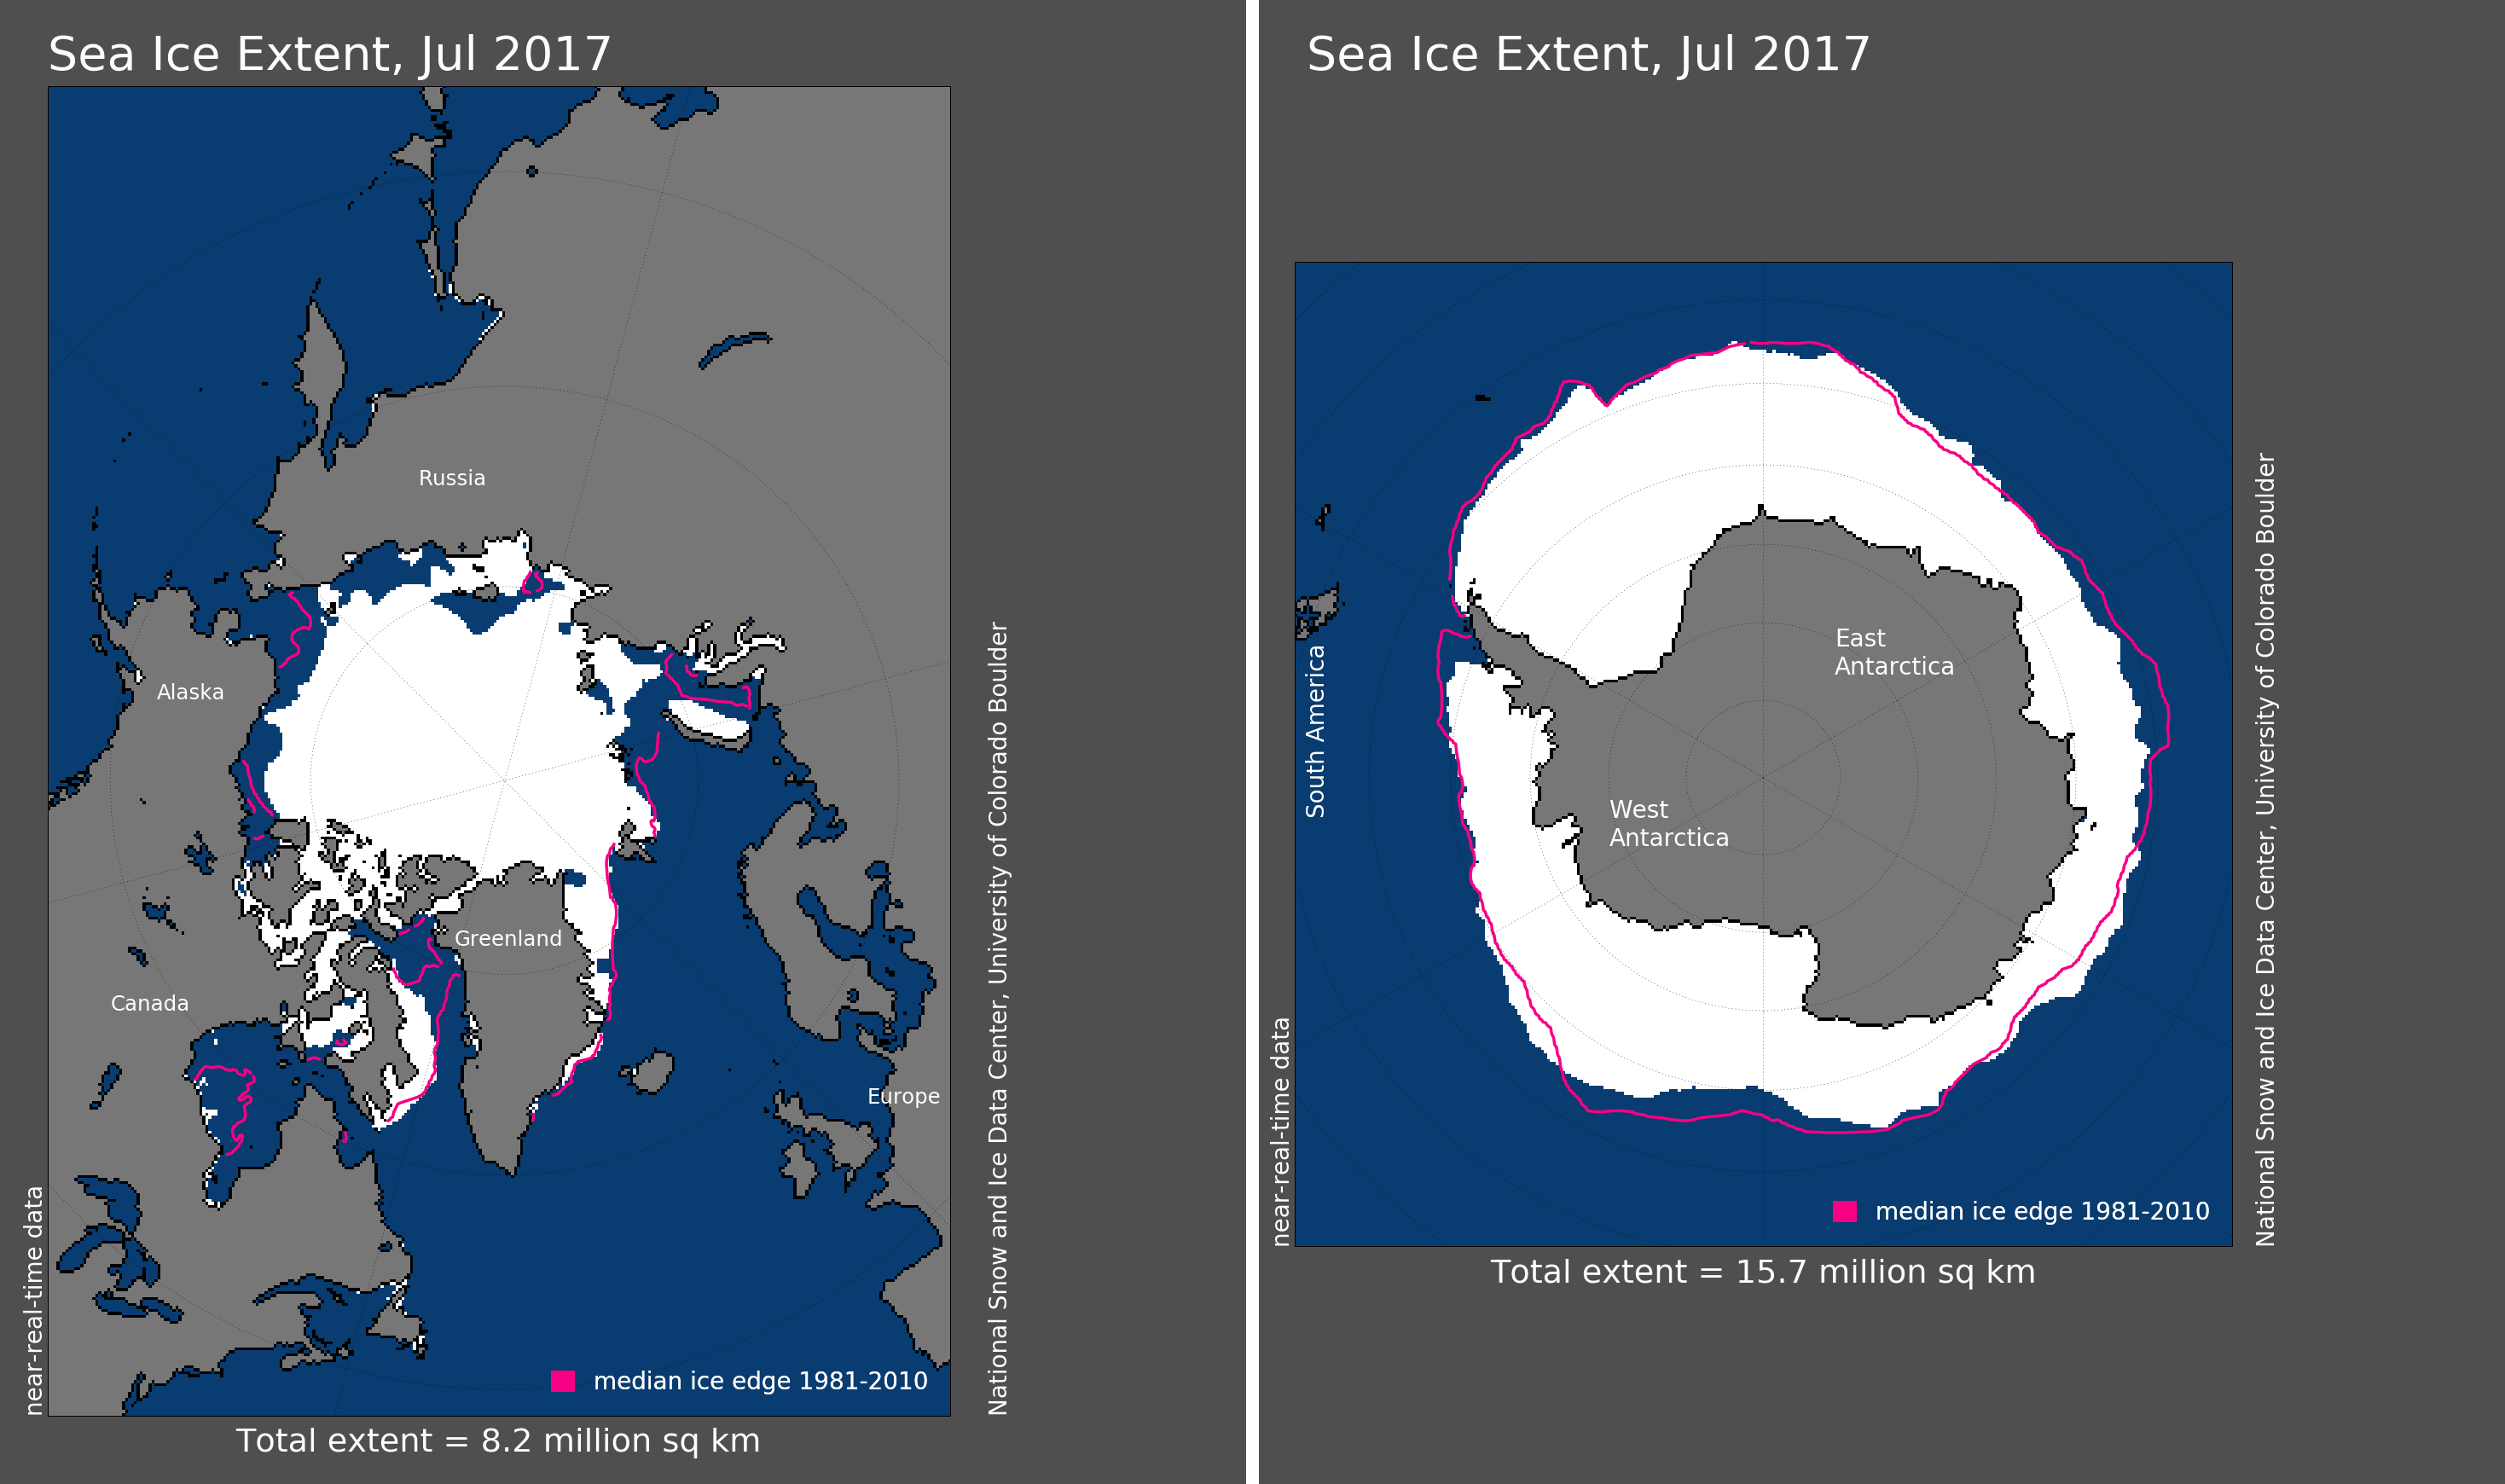 Maps of Arctic and Antarctic sea ice extent in July 2017